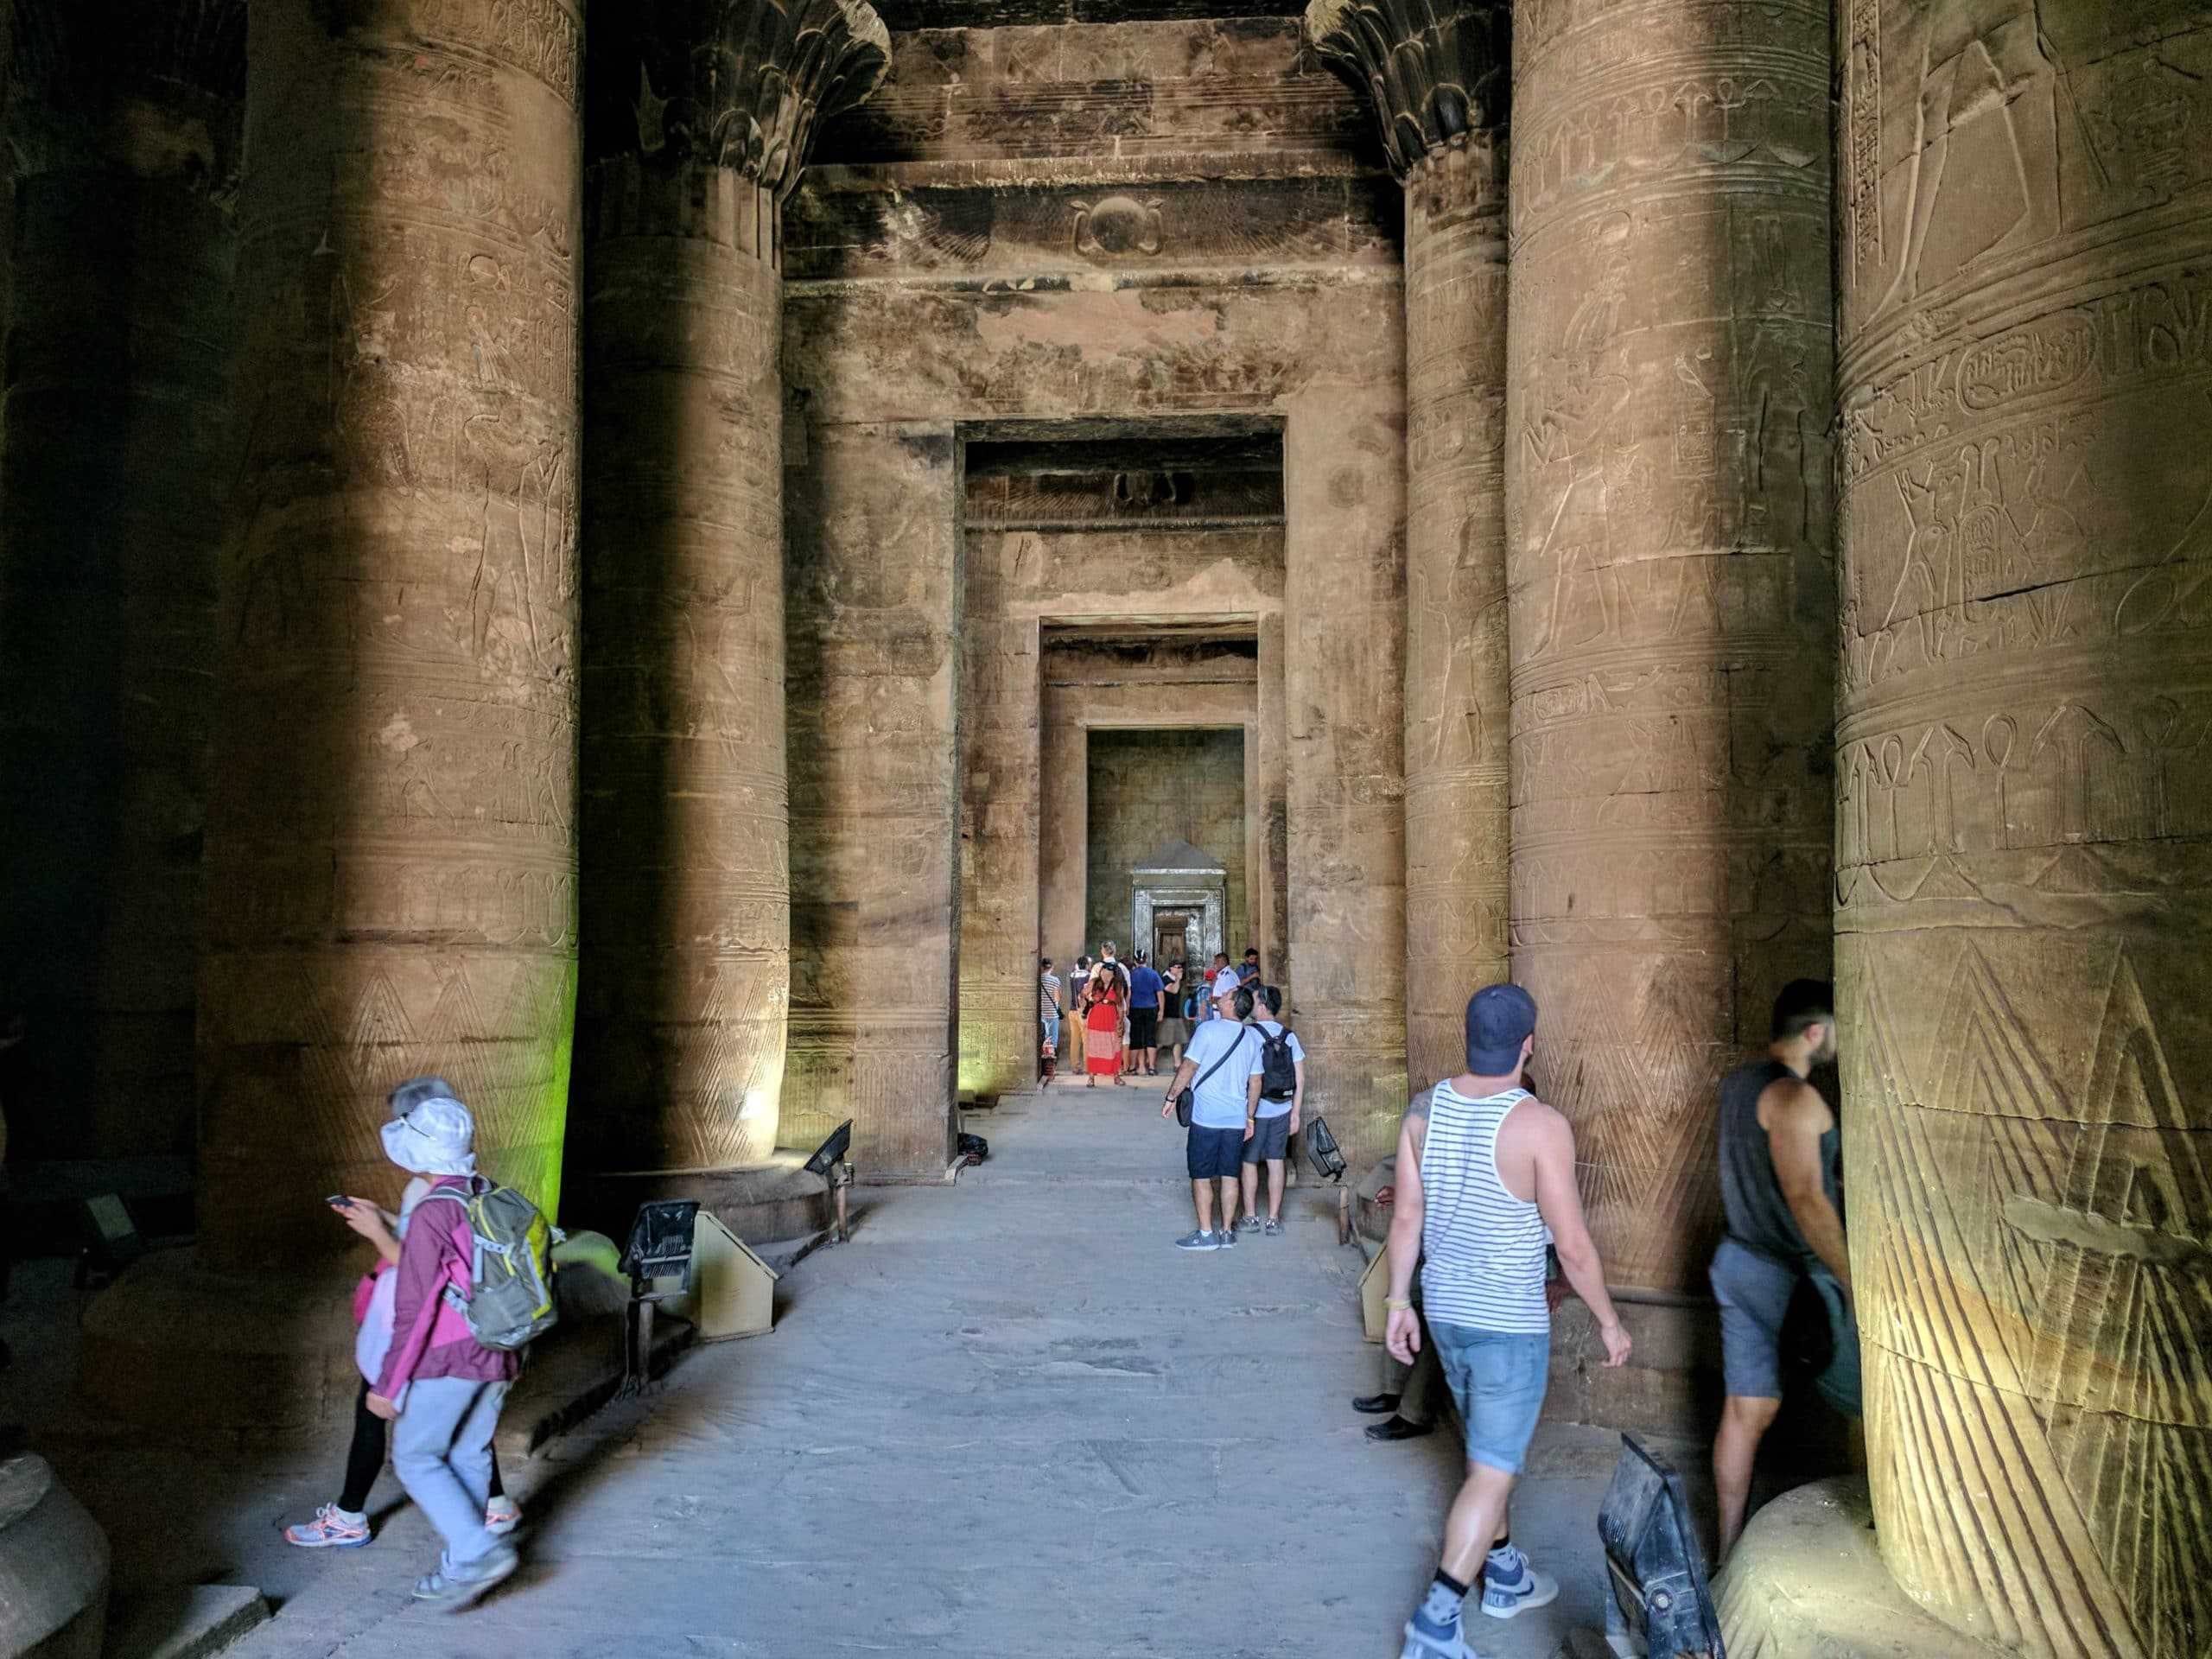 Men tourists walking on a temple in Egypt